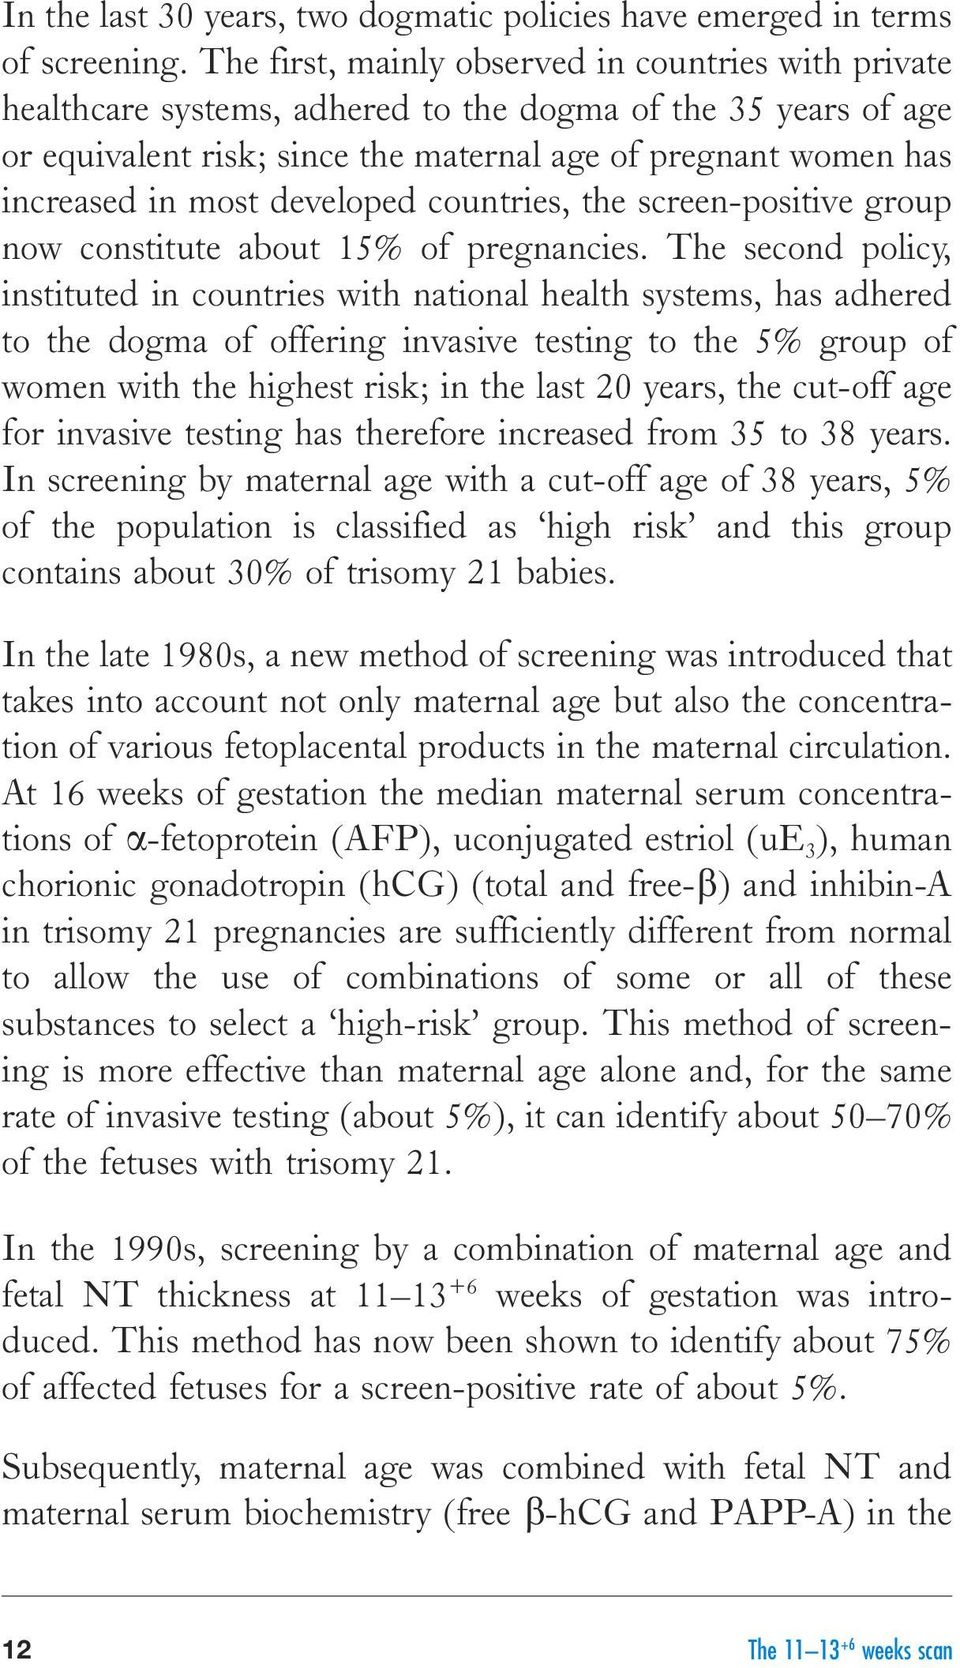 developed countries, the screen-positive group now constitute about 15% of pregnancies.